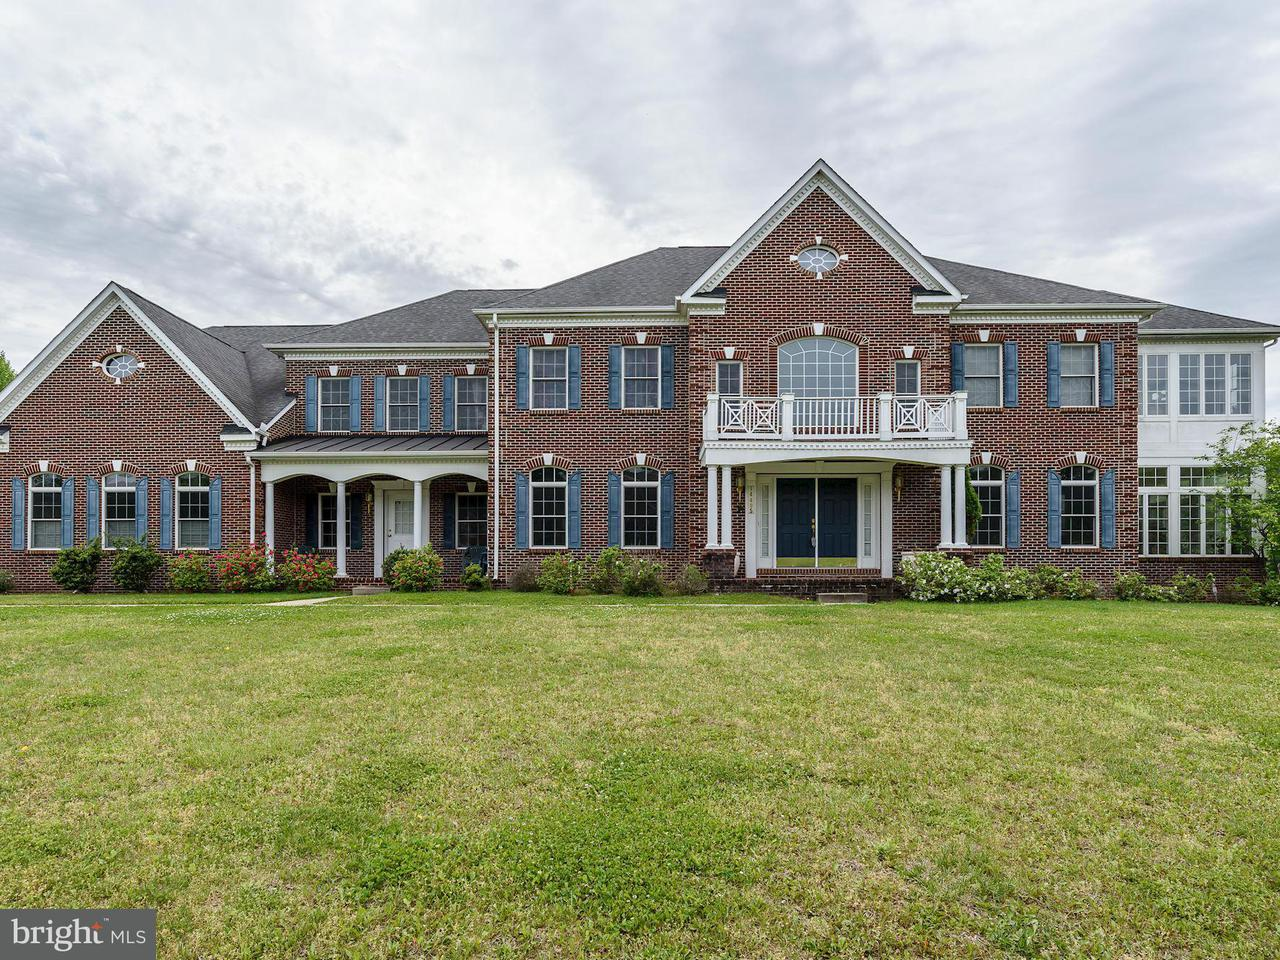 Casa Unifamiliar por un Venta en 14405 WOODMORE OAKS Court 14405 WOODMORE OAKS Court Bowie, Maryland 20721 Estados Unidos